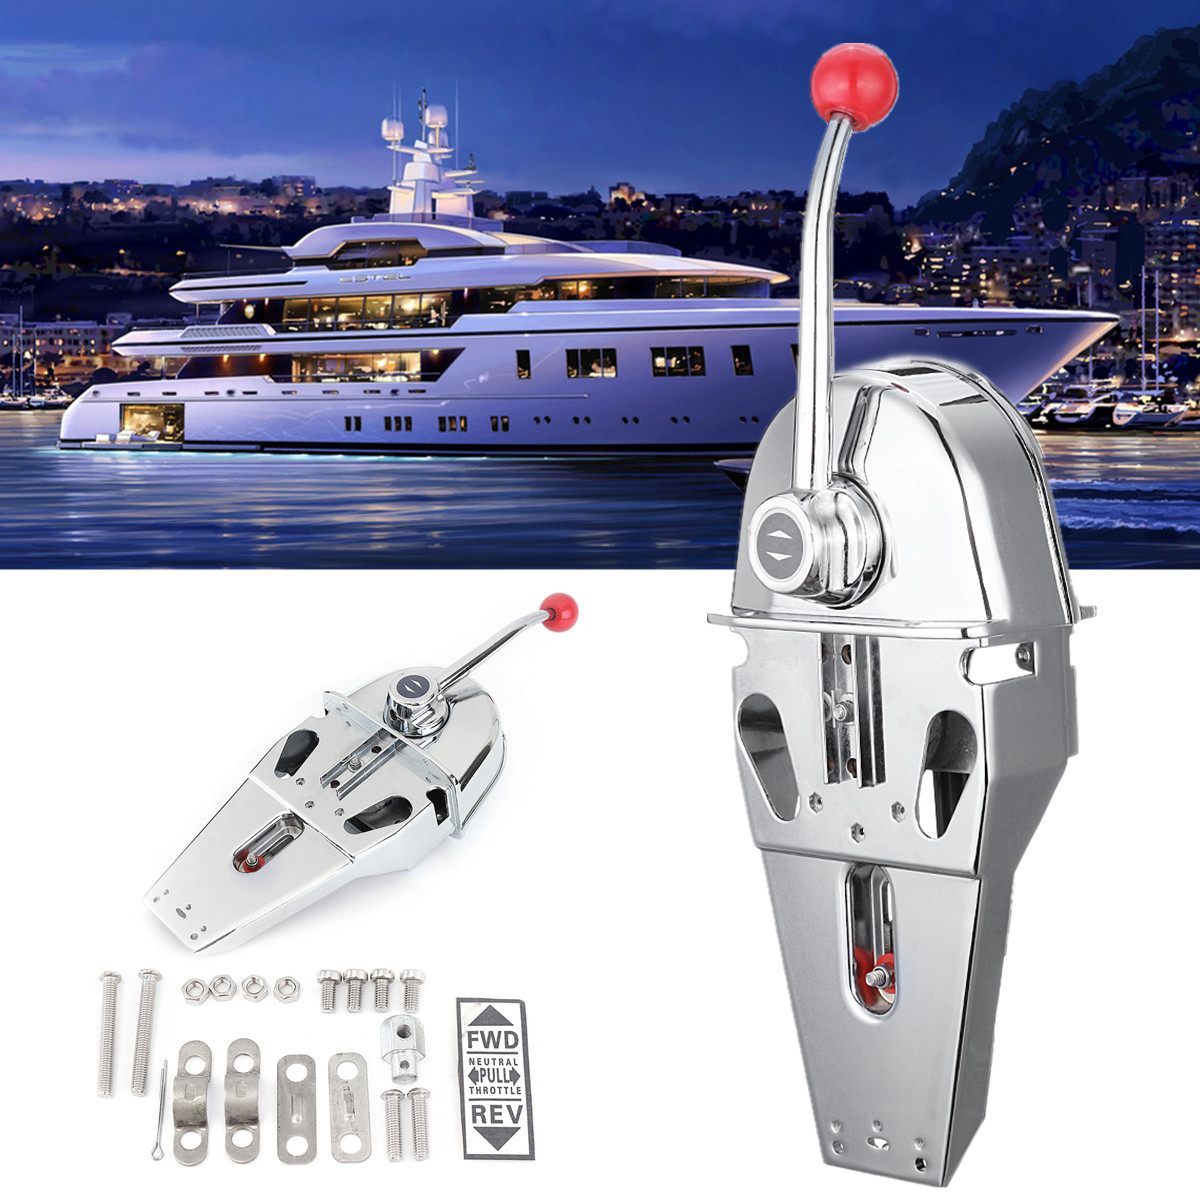 Handle Engine Control Box Top Mount 316 Stainless Steel Marine Boat Single Lever Dual Action Built-in Friction 45.5x15x12cmHandle Engine Control Box Top Mount 316 Stainless Steel Marine Boat Single Lever Dual Action Built-in Friction 45.5x15x12cm